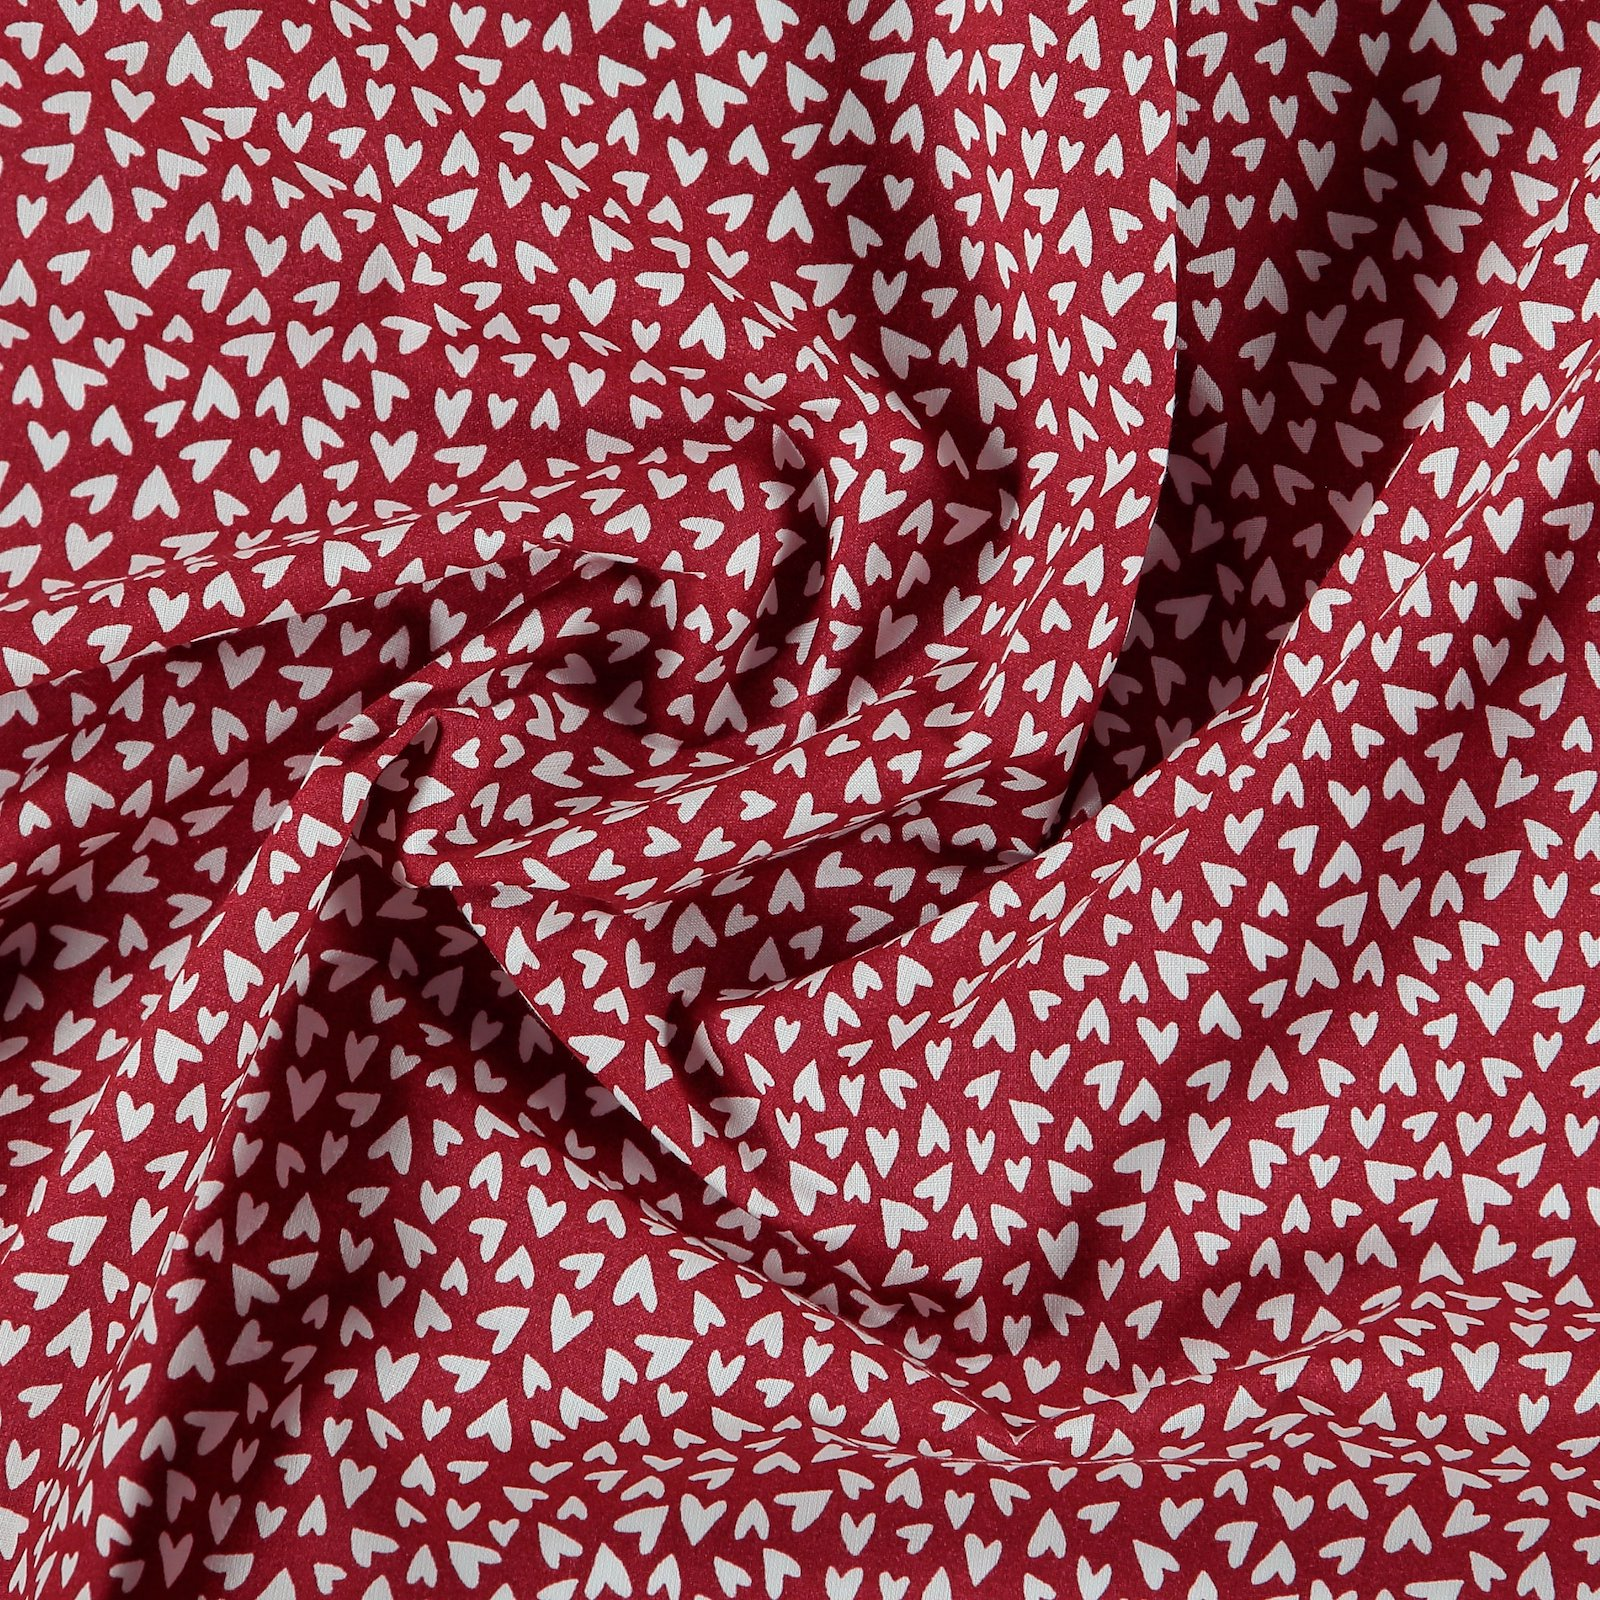 Cotton classic red with white hearts 790141_pack